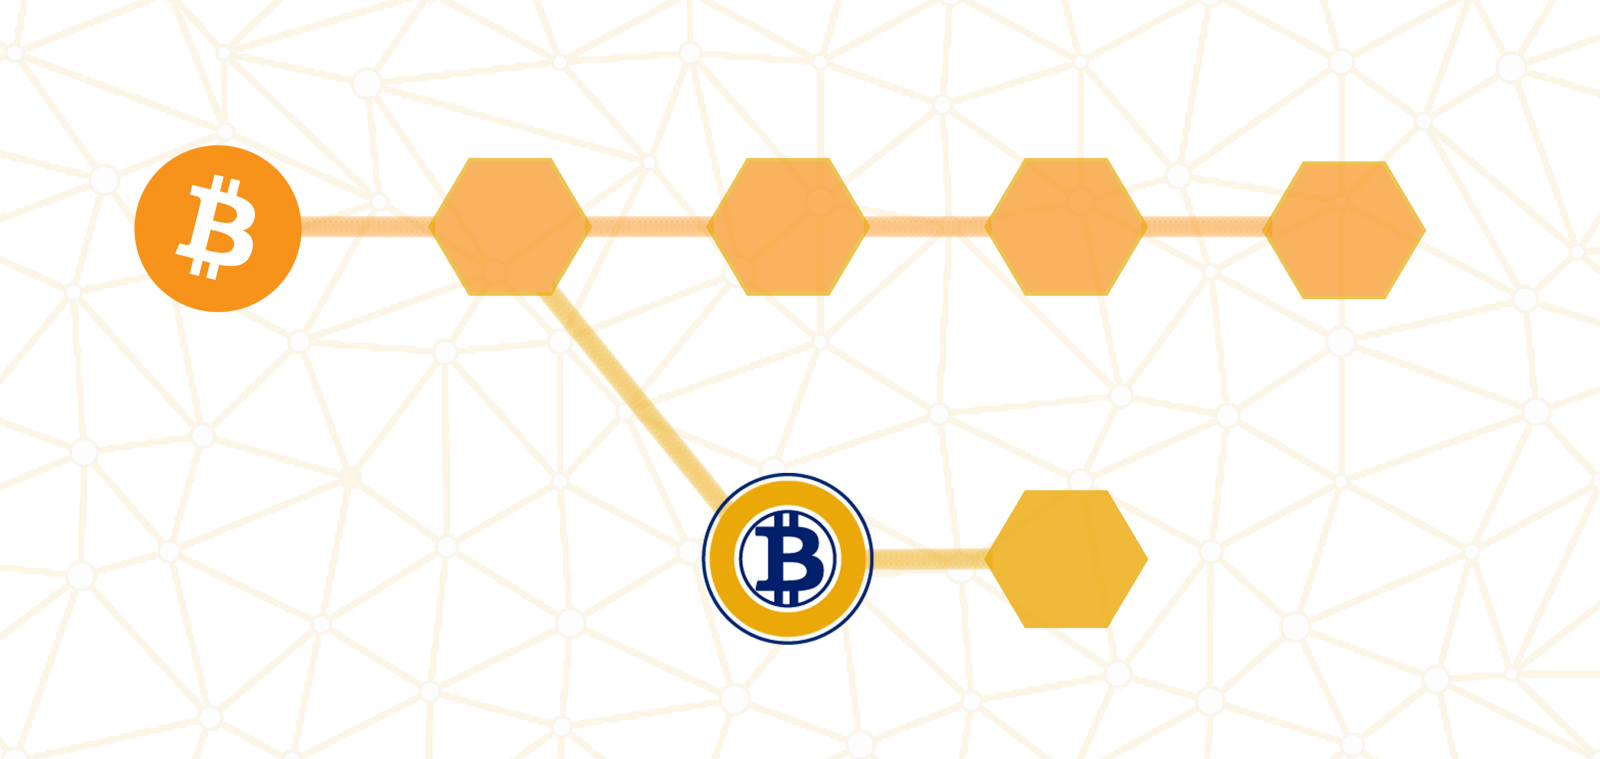 Bitcoin gold updated statement koinex crunch medium the bitcoin gold btg snapshot block is 491407 which will identify the wallet balance for btg tokens this block will be reached approximately at 600 pm ccuart Choice Image